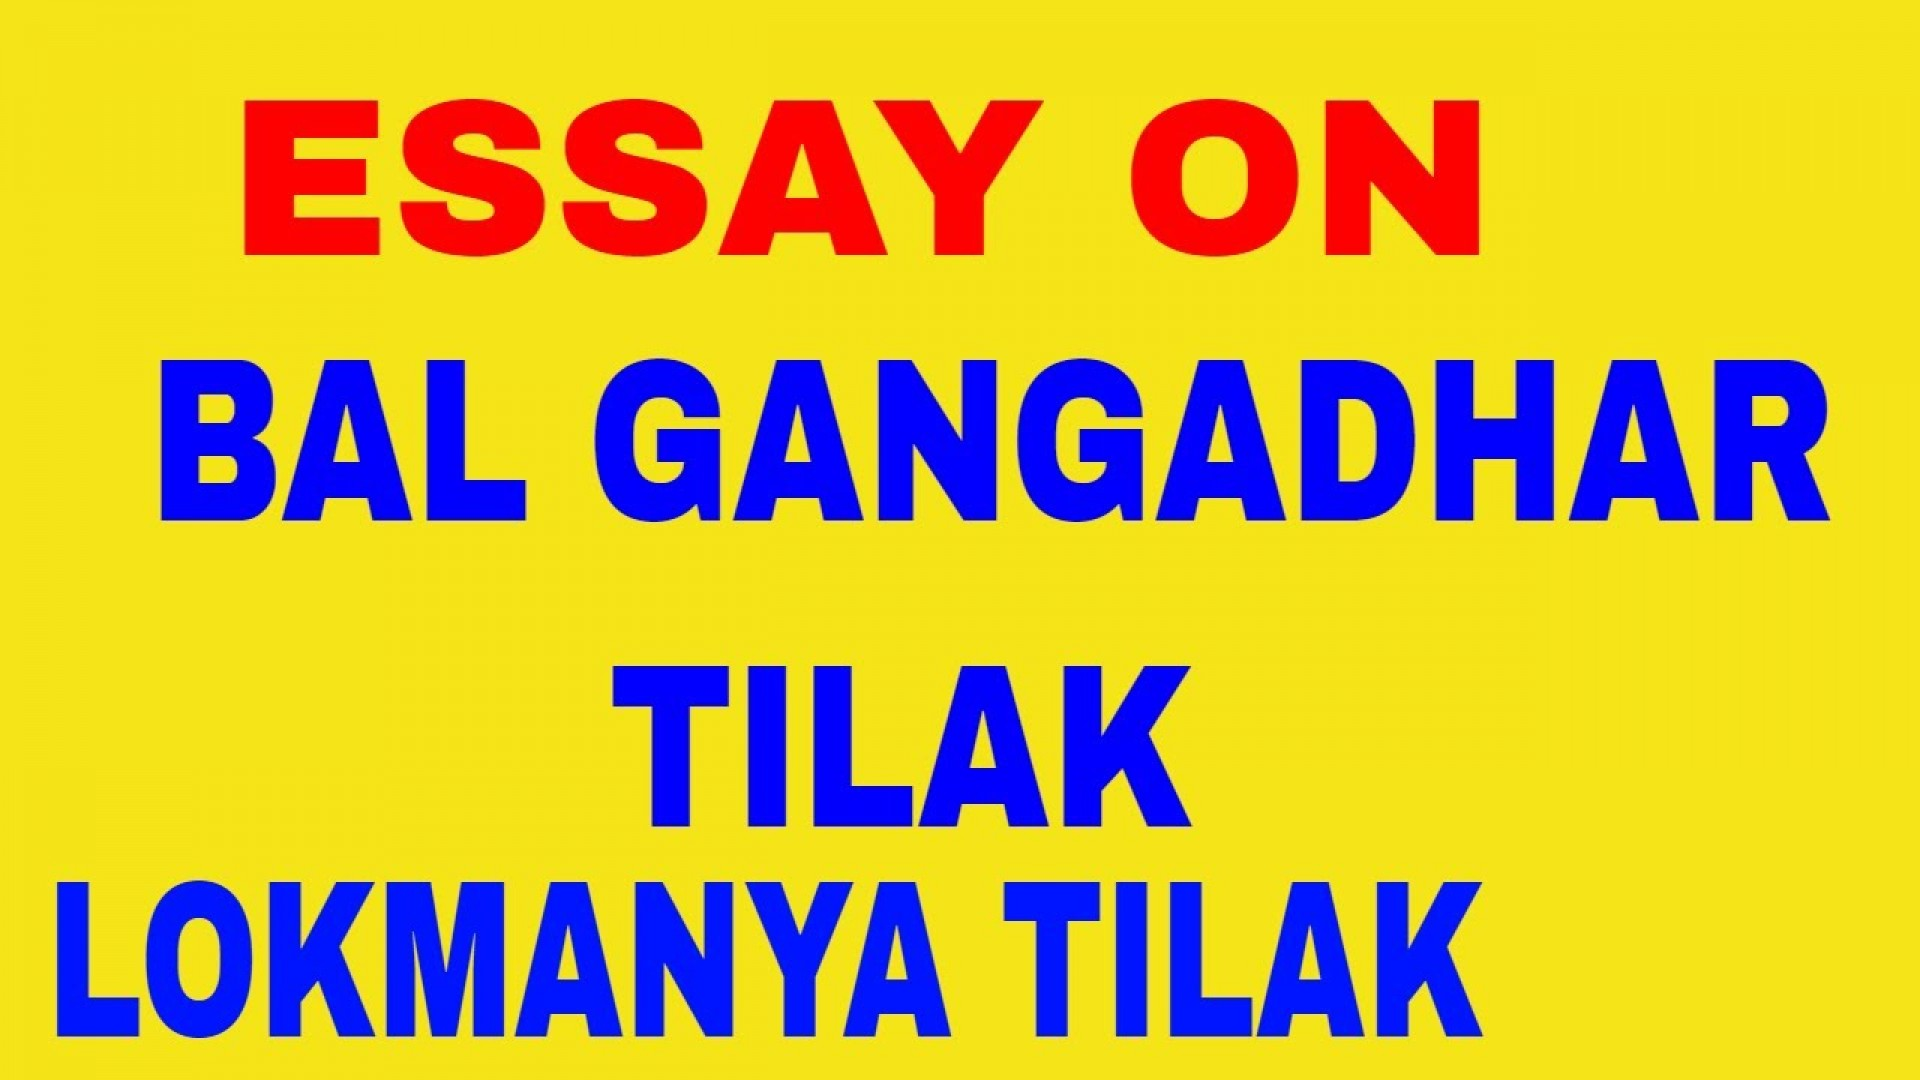 004 Essay Example Maxresdefault Lokmanya Incredible Tilak Aste Tar In Marathi On Bal Gangadhar Hindi Pdf 1920